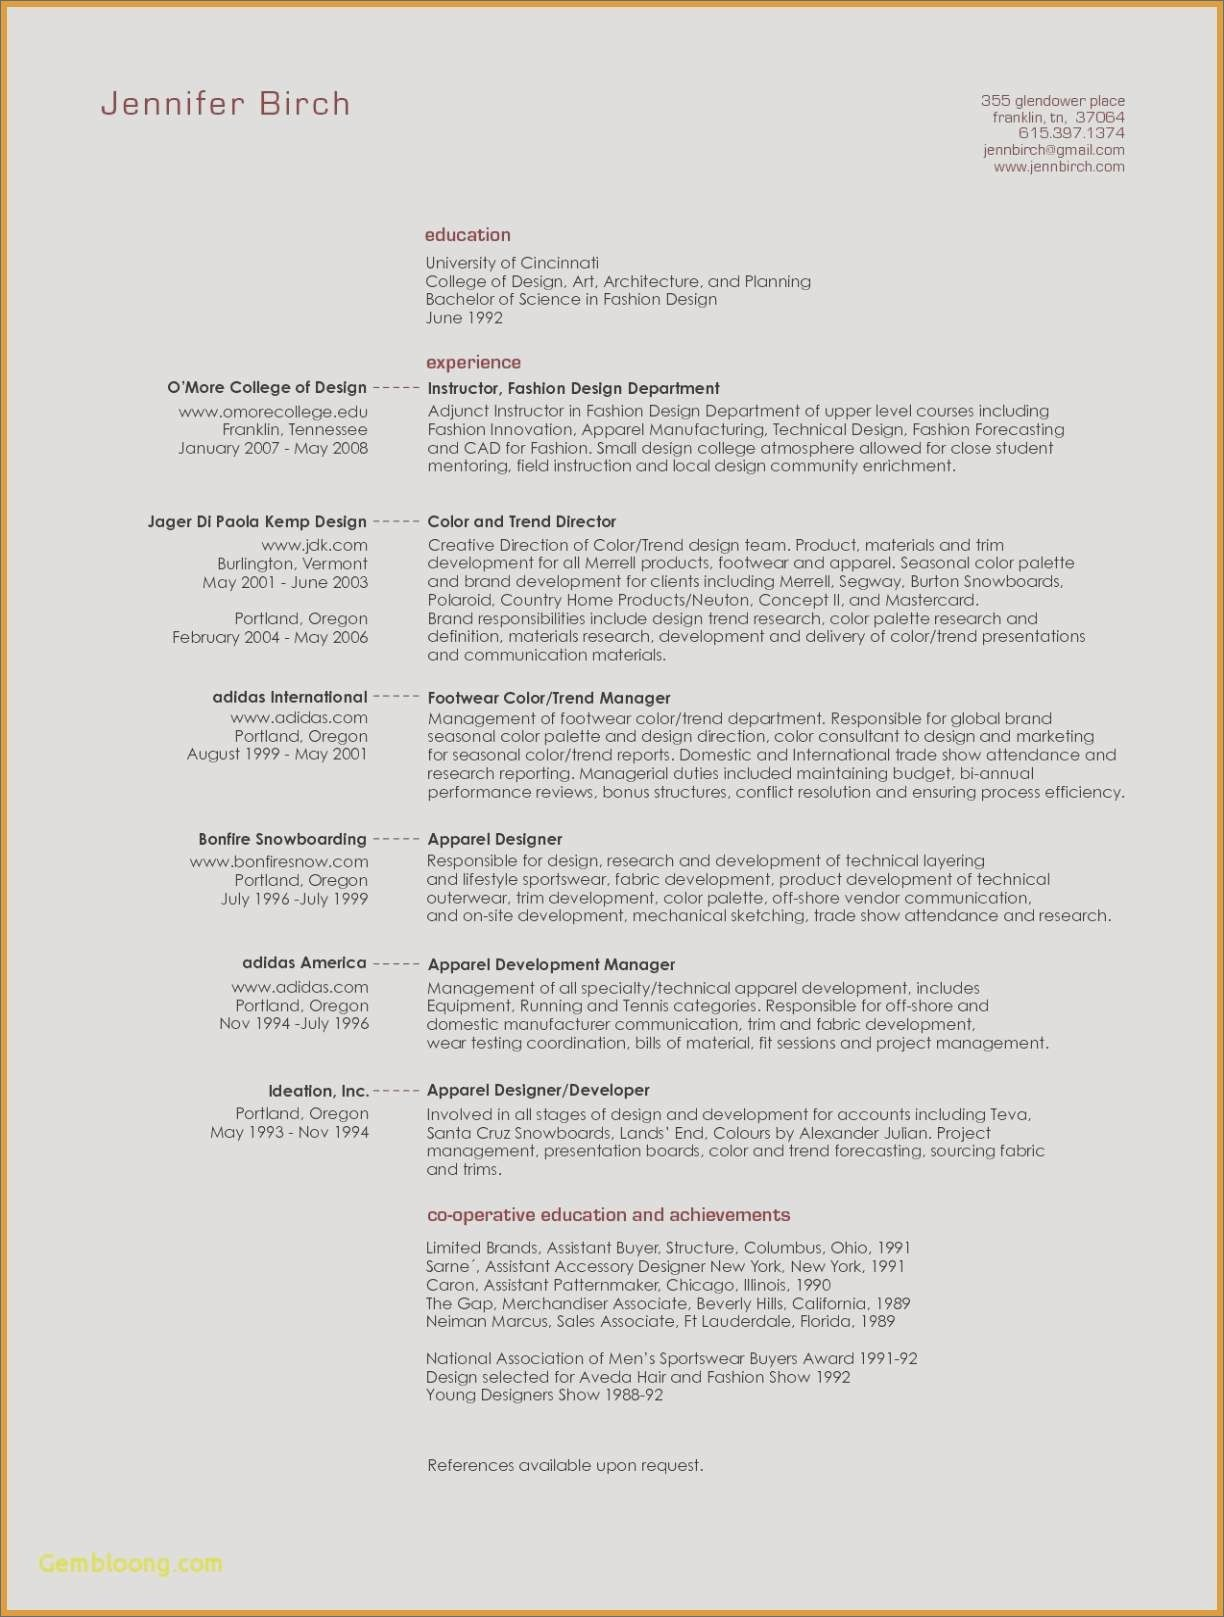 Uiuc Resume Template - Sample Resume for Teachers Best Sample Architecture Resumes Nanny